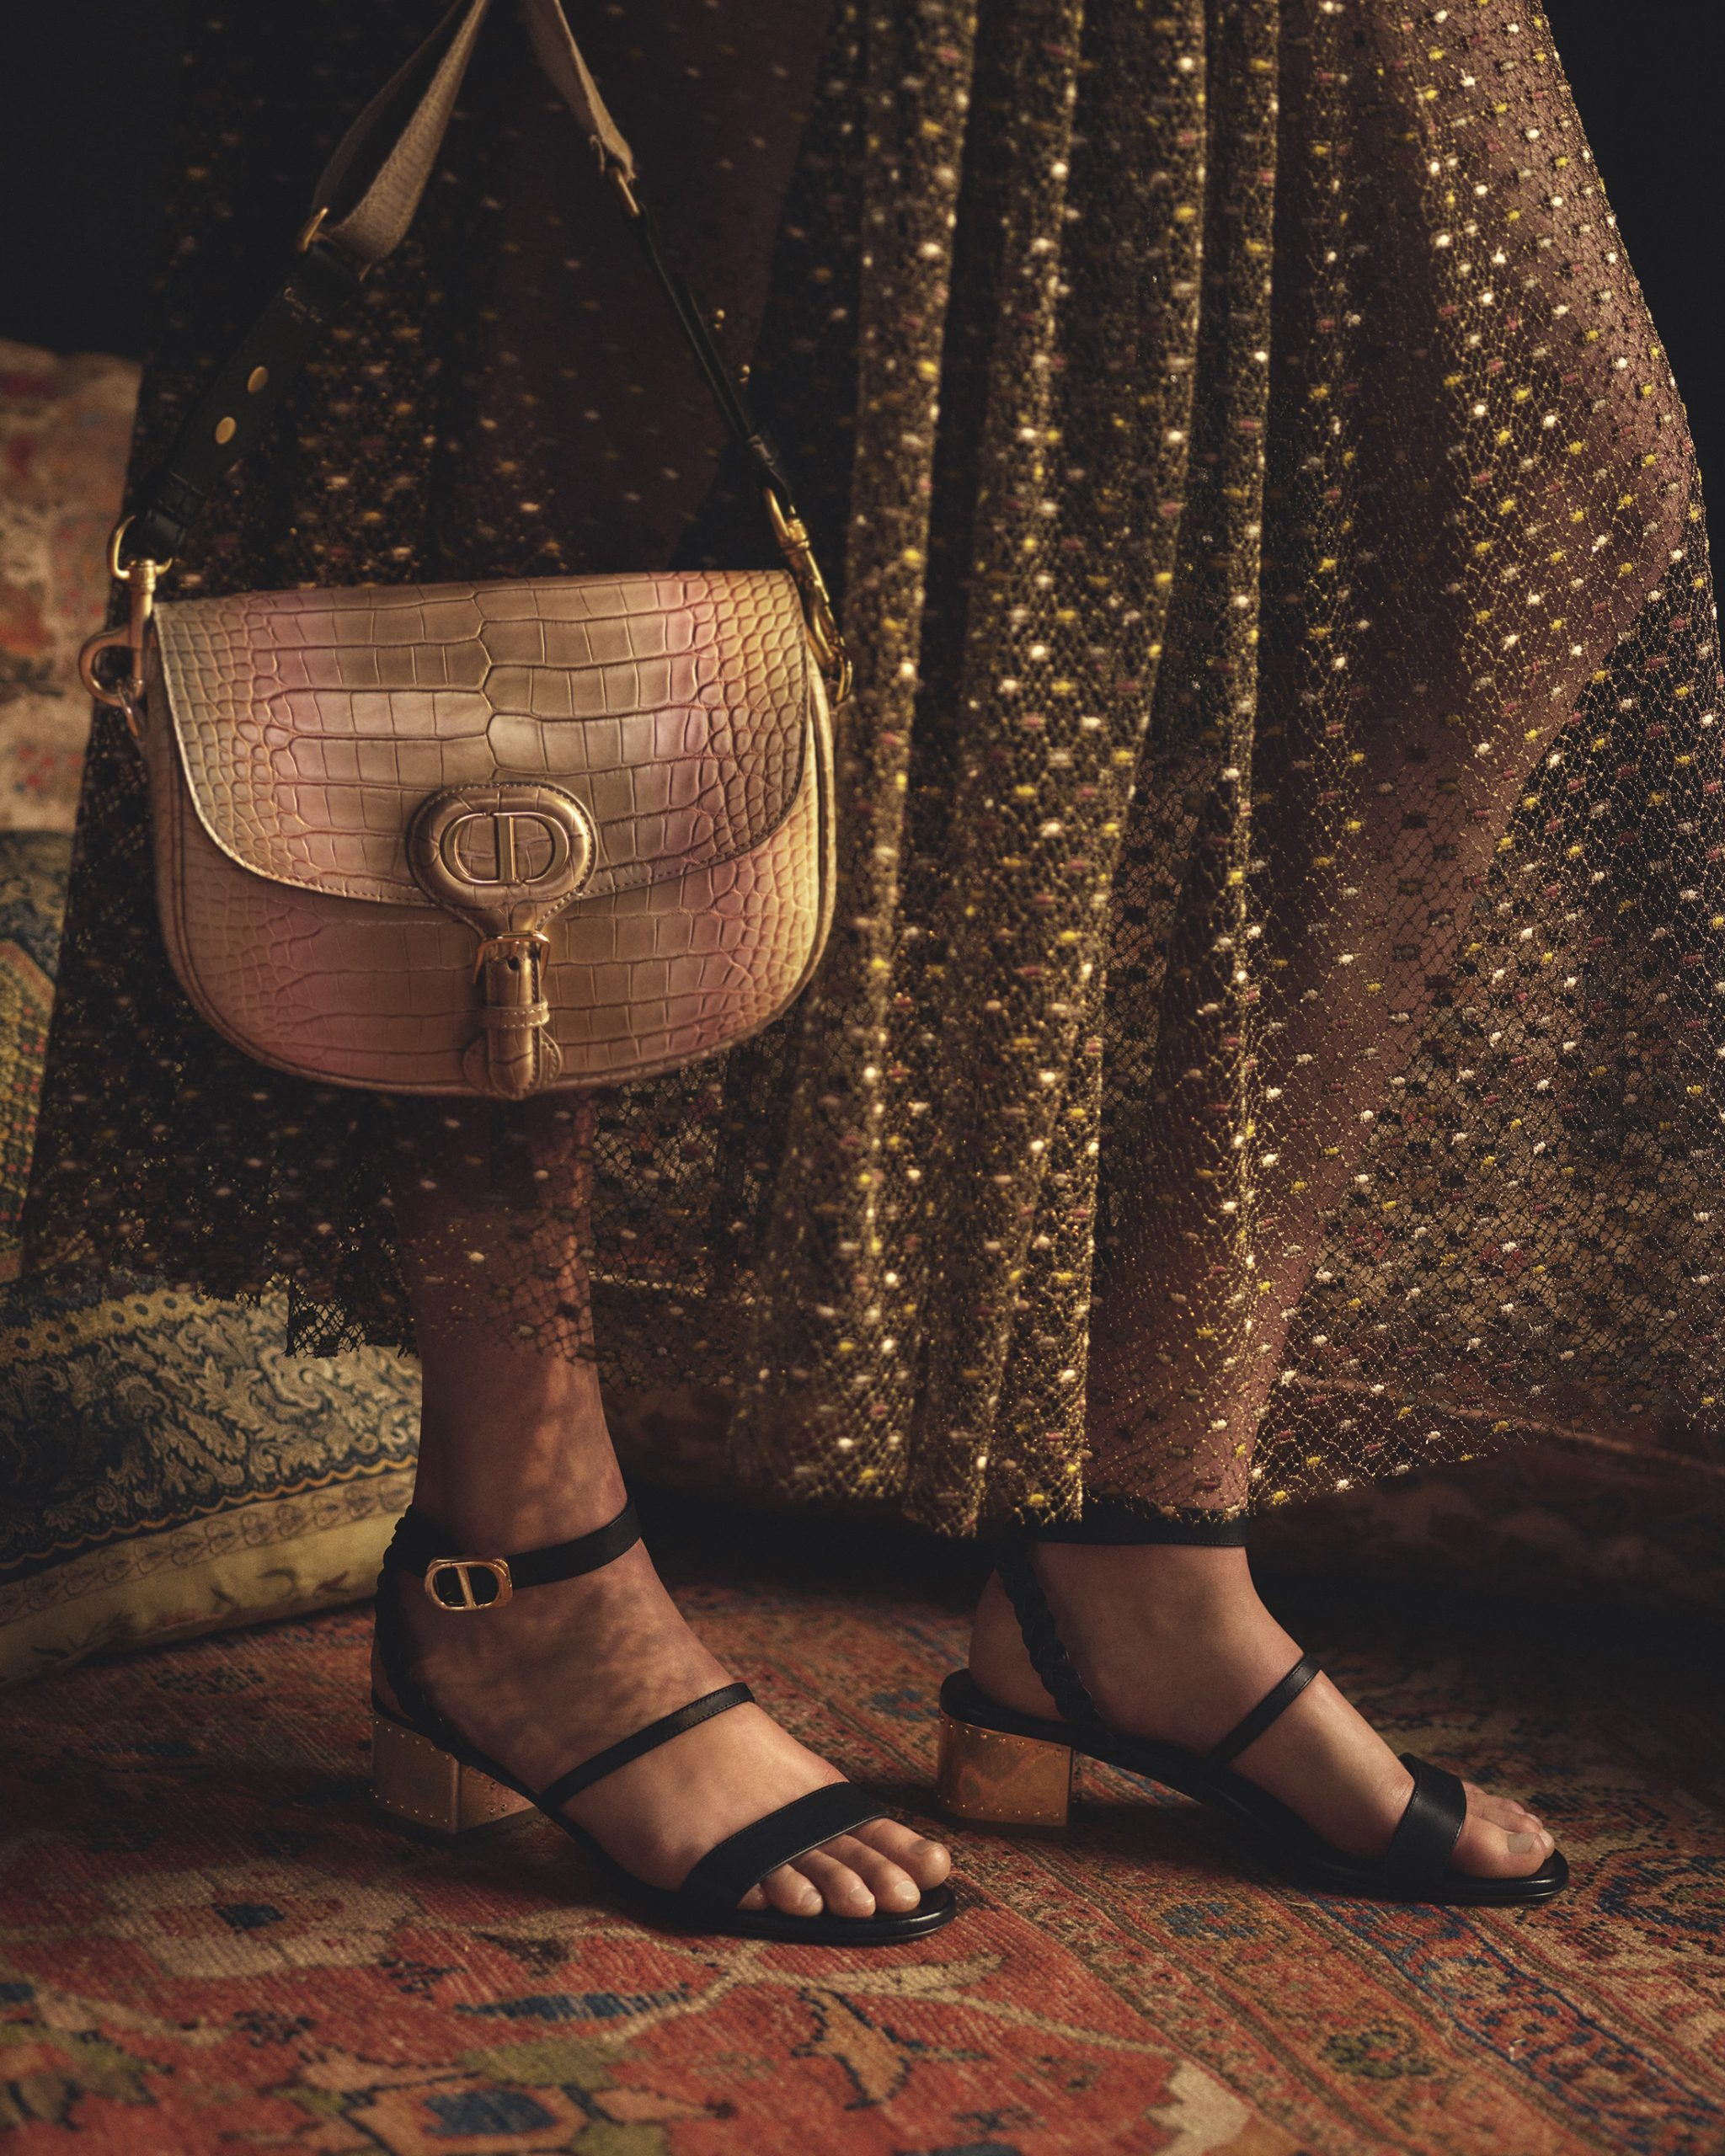 Dior's Latest Gold Capsule Reflects Dior's Storytelling Translated to Sales Approach